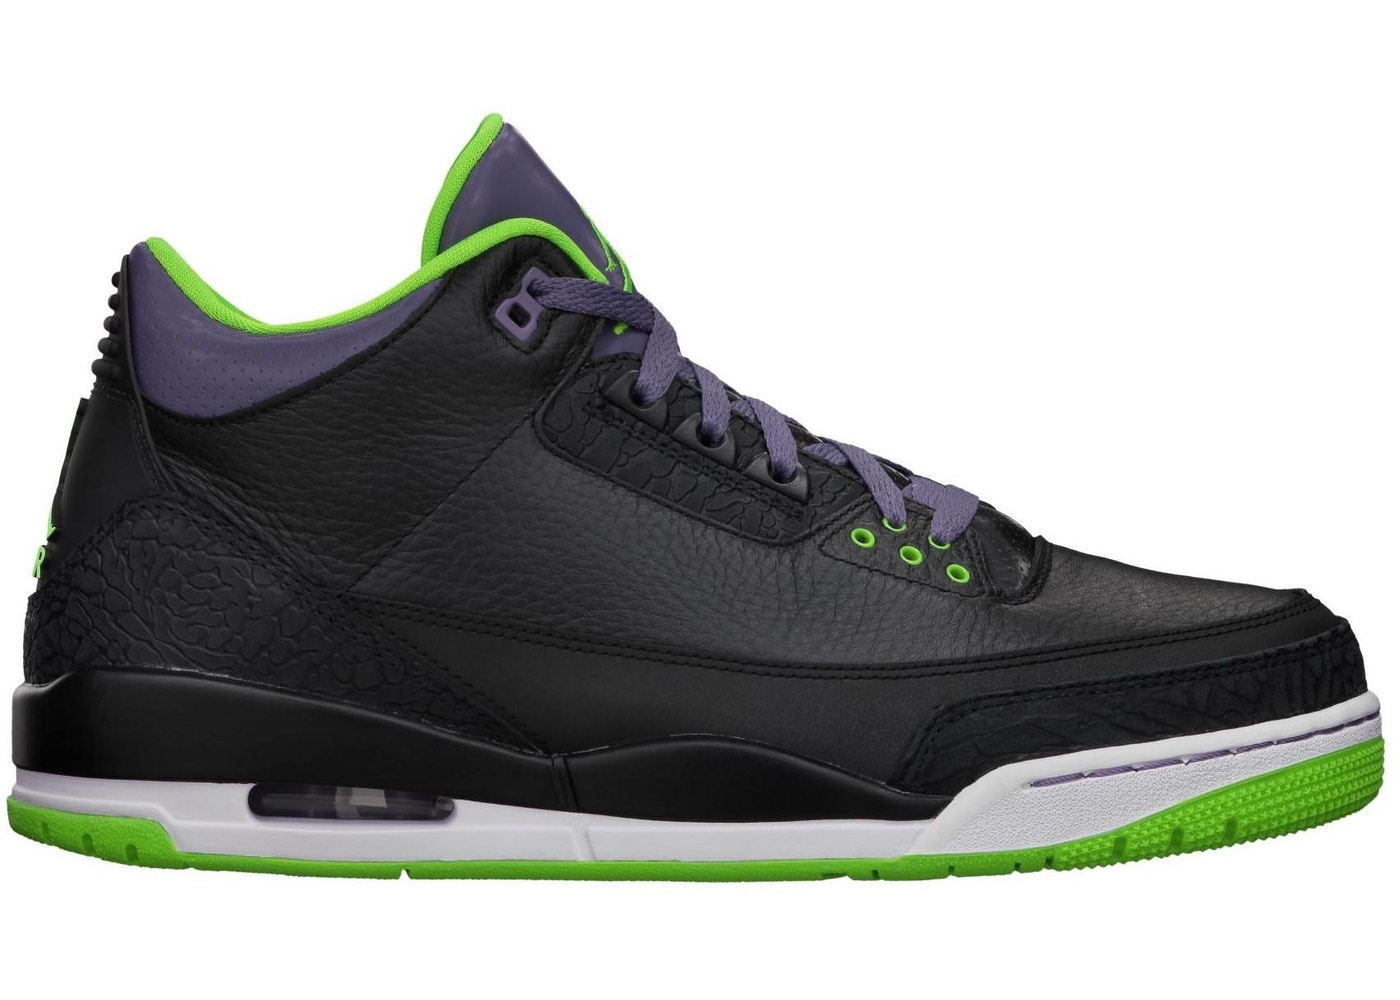 brand new a3cd6 c4501 HypeAnalyzer · Jordan 3 Retro Joker